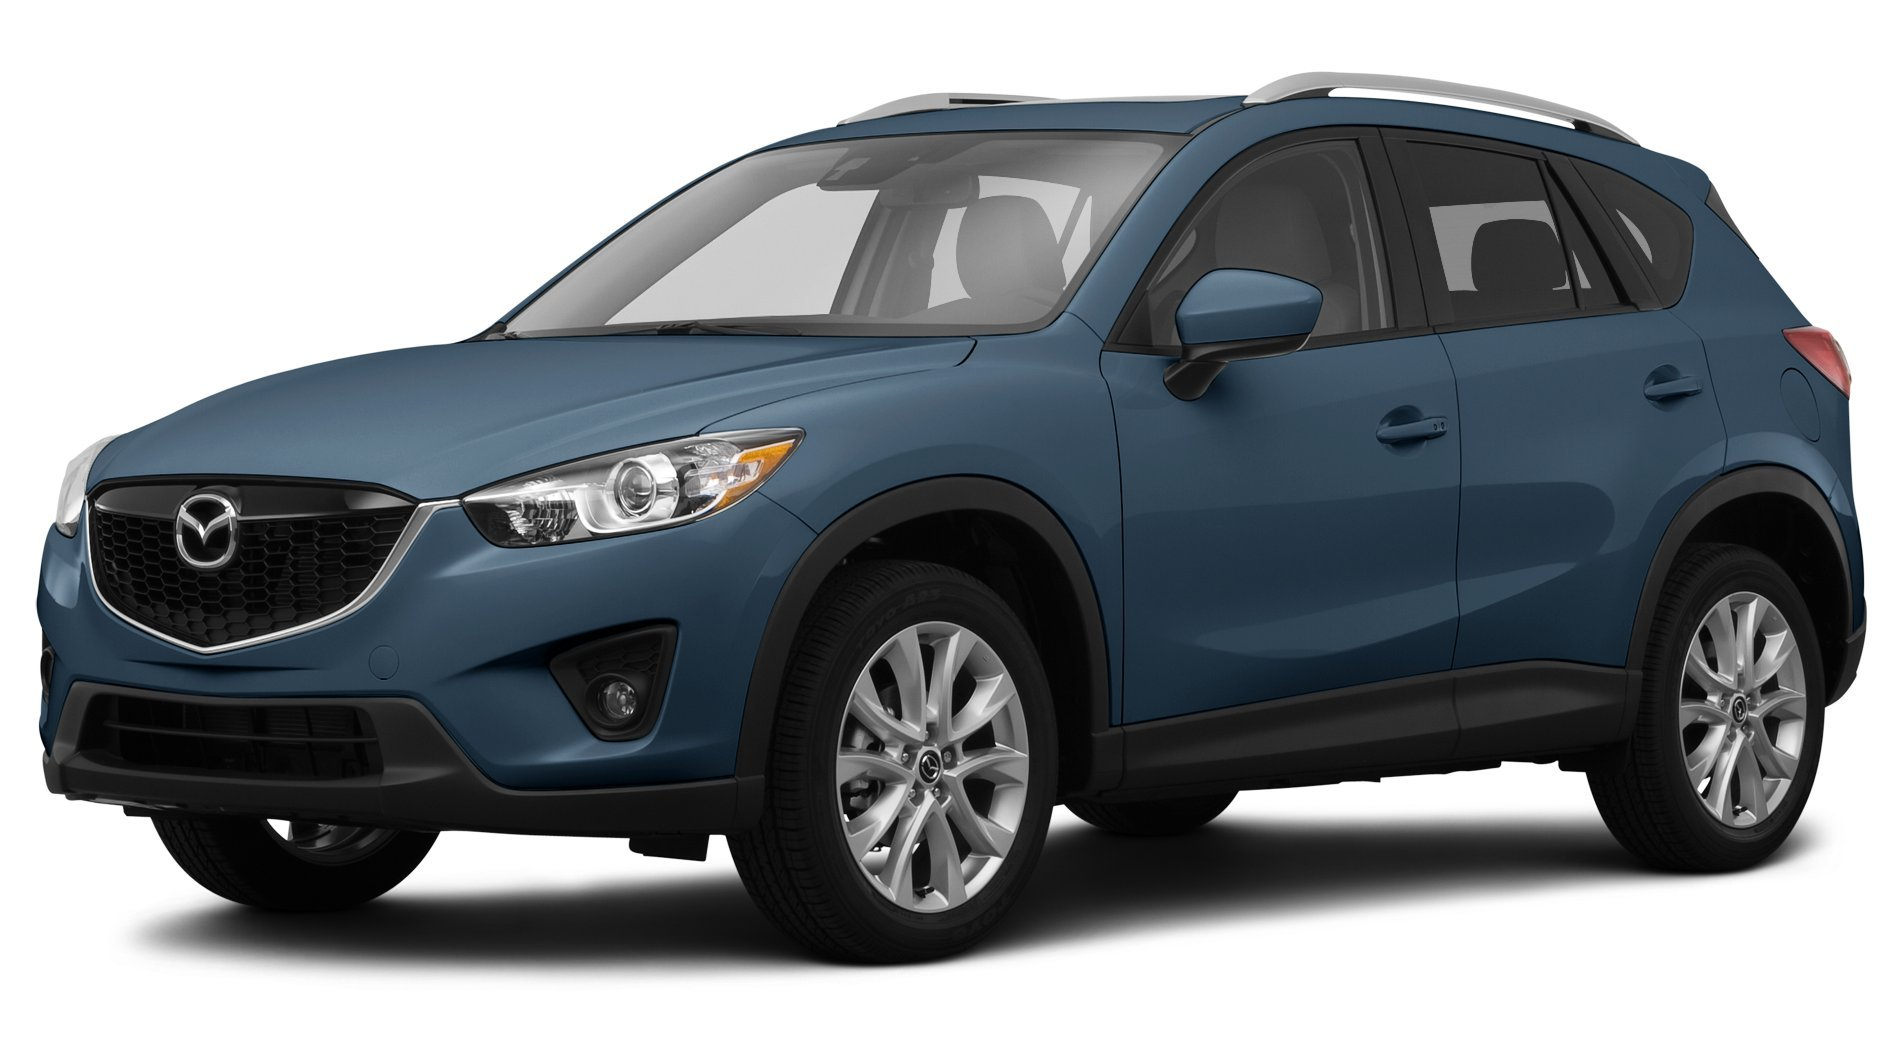 2014 mazda cx 5 reviews images and specs vehicles. Black Bedroom Furniture Sets. Home Design Ideas